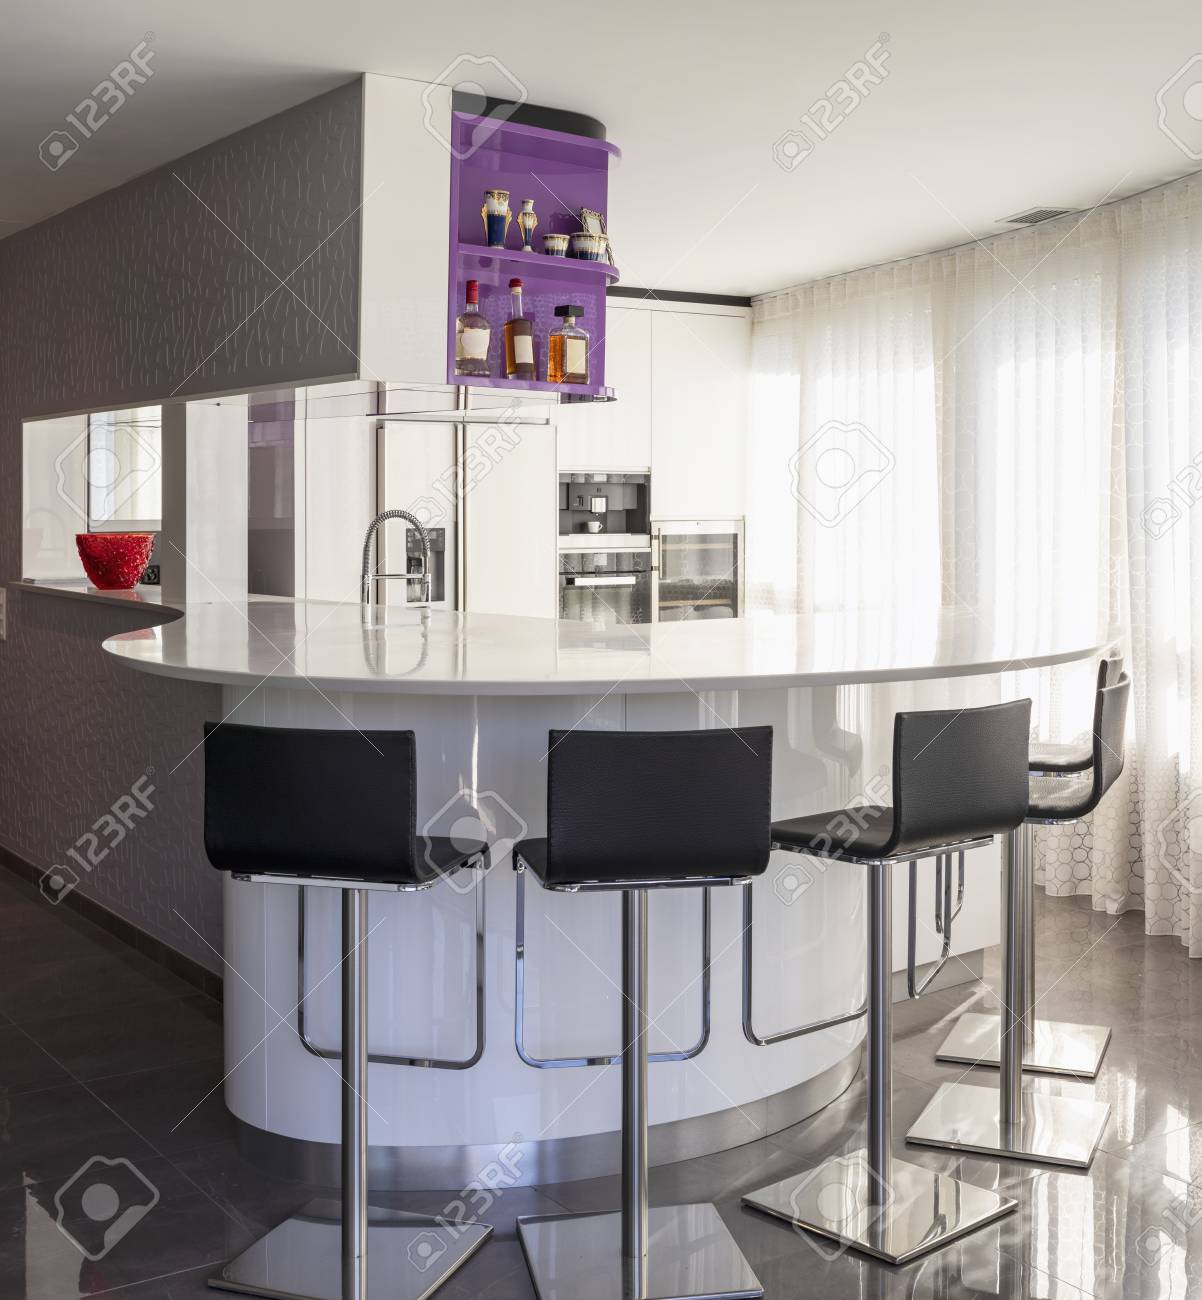 Kitchen With Purple And White Wardrobe Black Counter Elegant Stock Photo Picture And Royalty Free Image Image 114303382